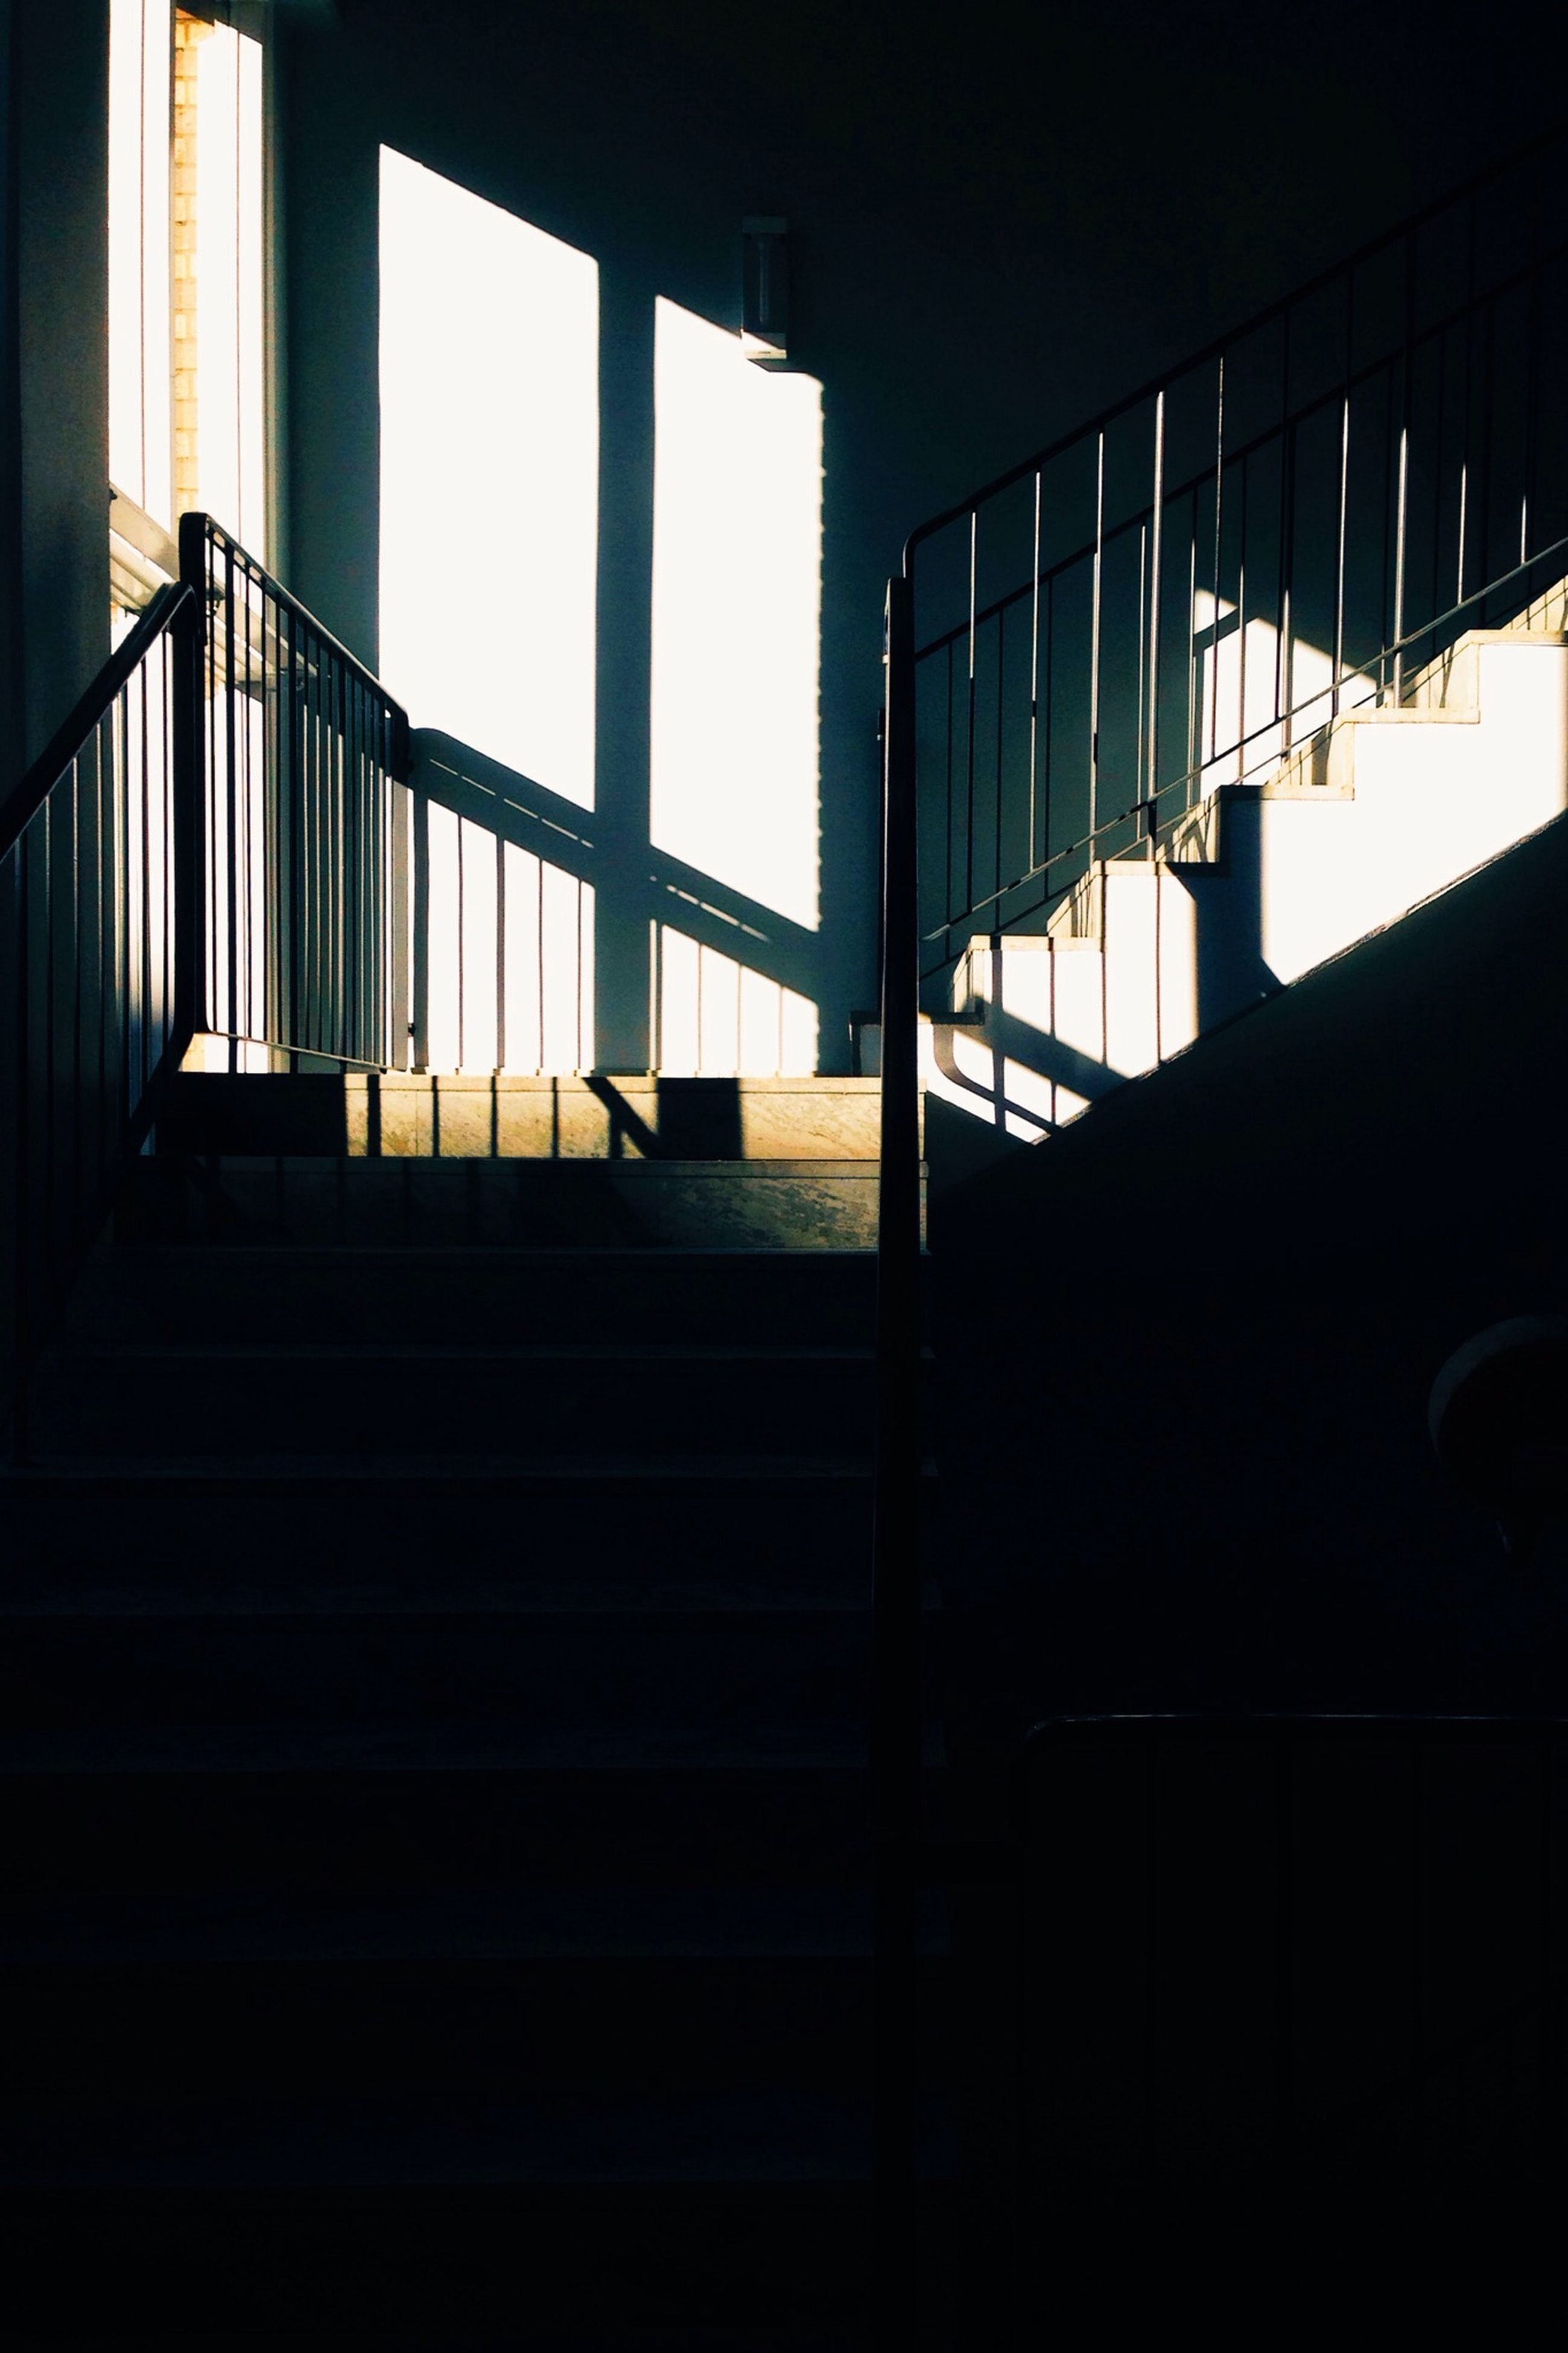 indoors, built structure, architecture, railing, steps, window, staircase, low angle view, steps and staircases, sunlight, building, no people, metal, pattern, silhouette, dark, day, building exterior, glass - material, shadow